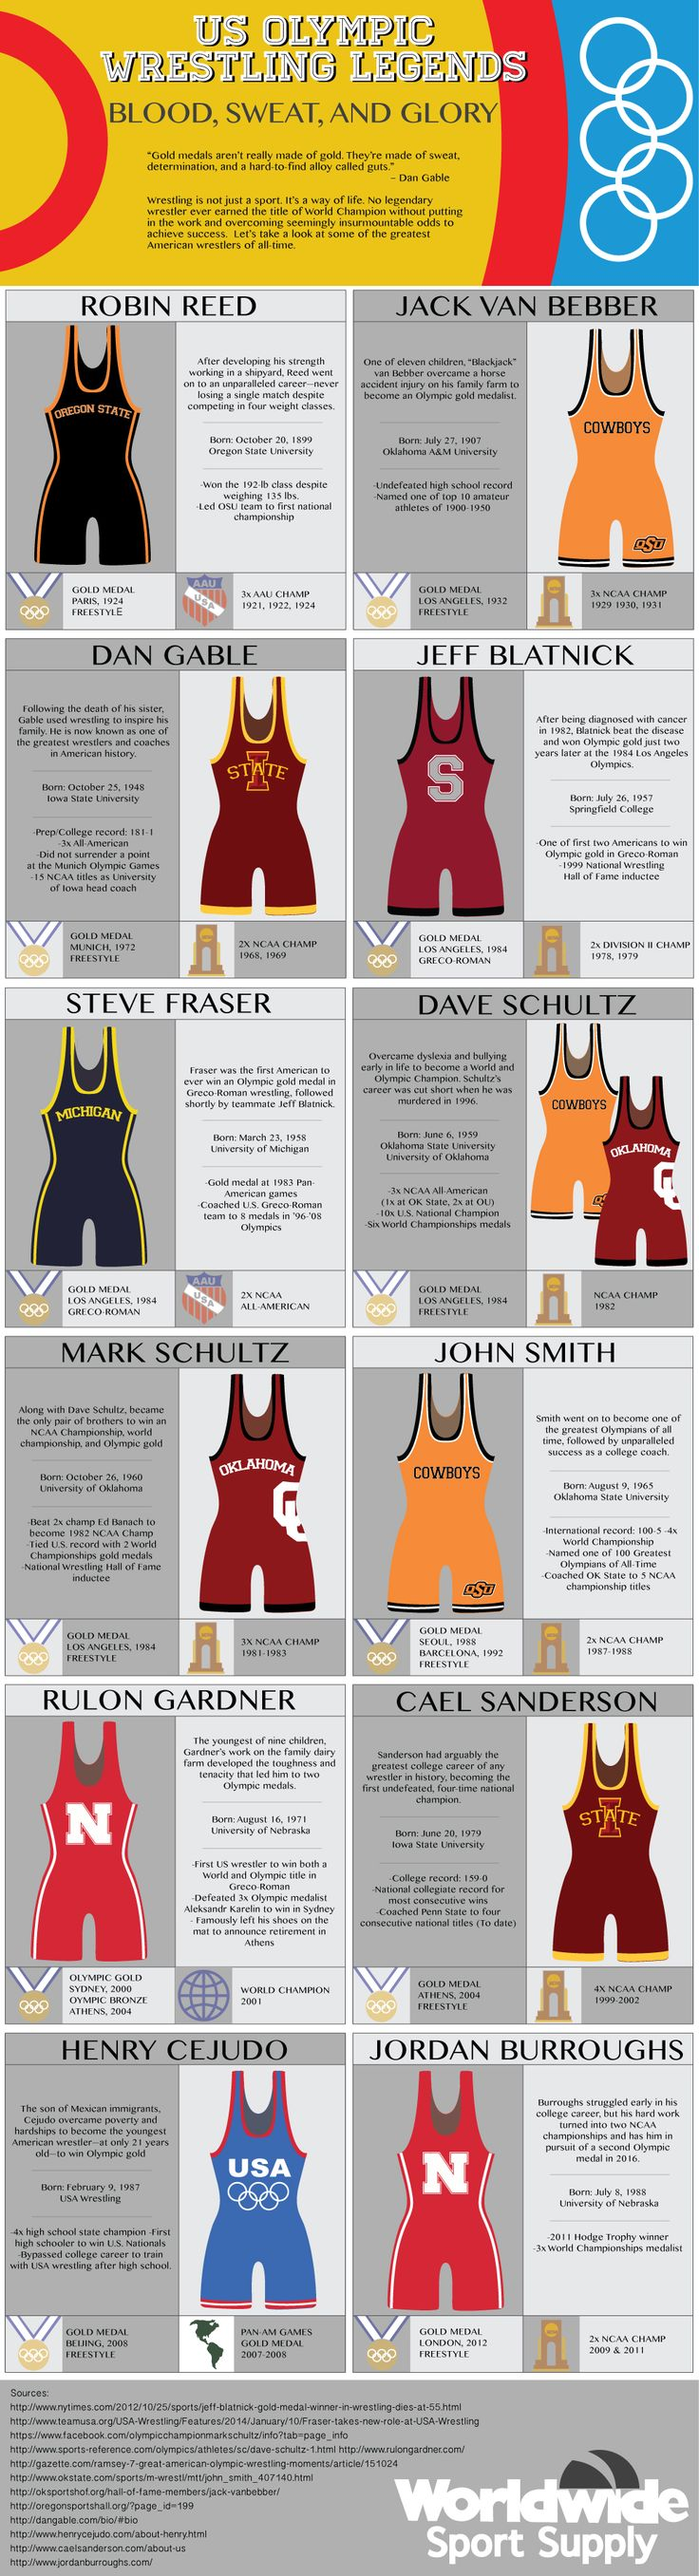 olympic legends infographic